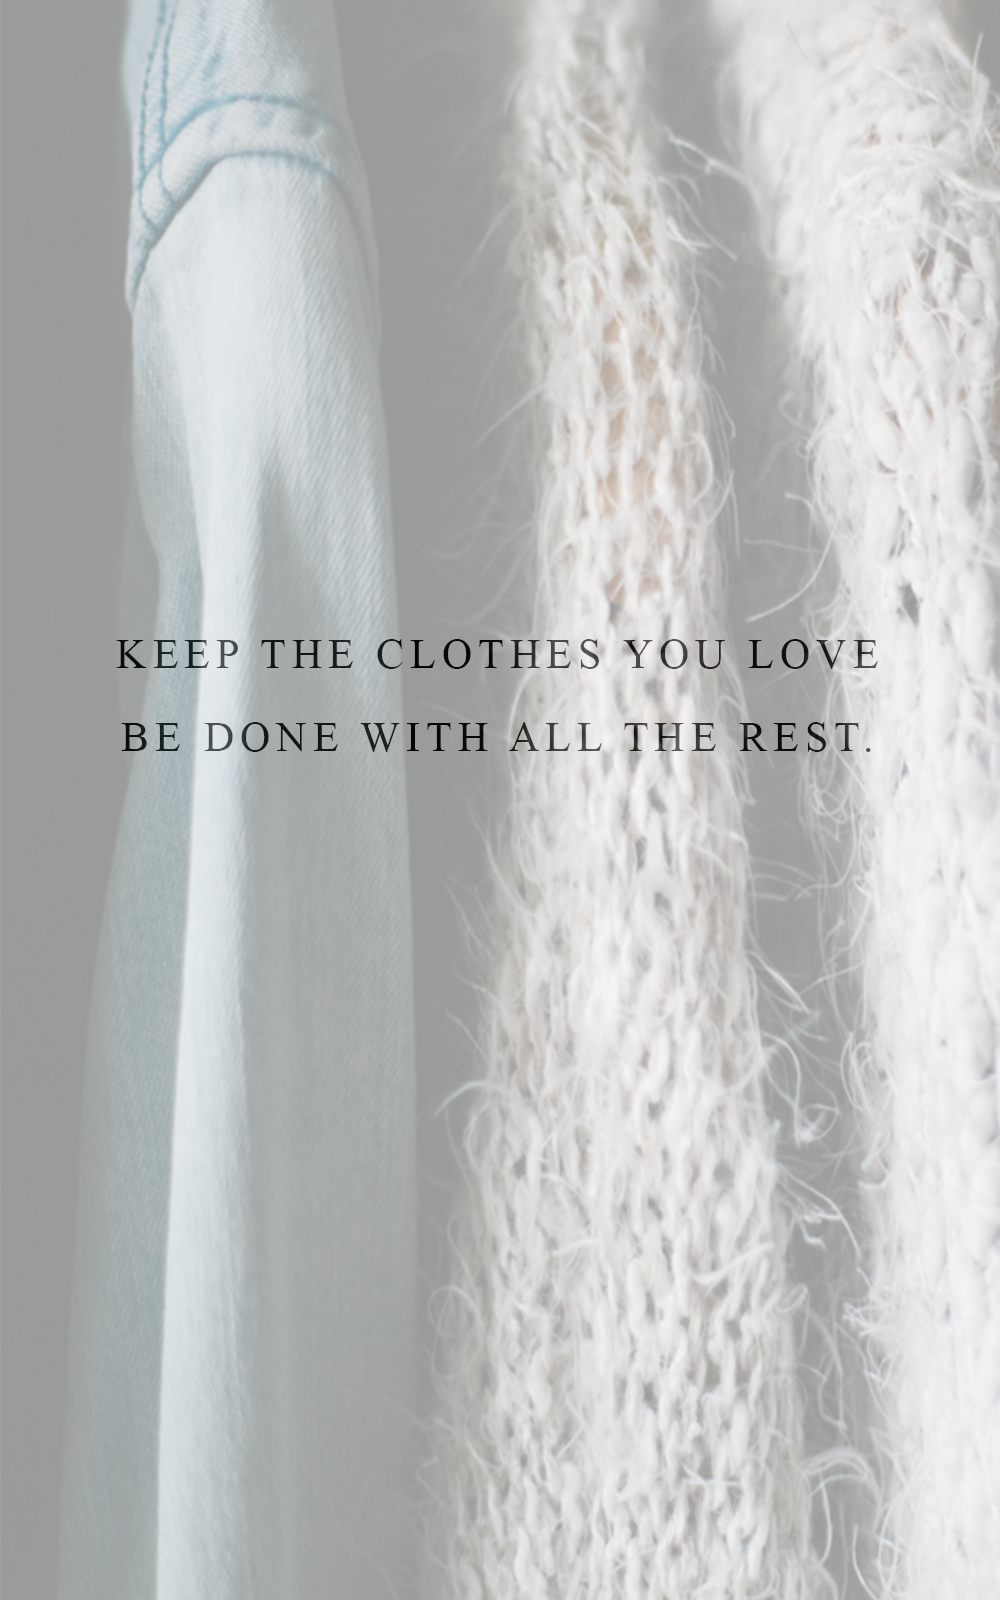 De-clutter your wardrobe in 7 easy steps. A simple closet purge strategy for a minimalist wardrobe. www.houseofsmilla.com/blog/de-clutter-wardrobe-in-7-easy-steps